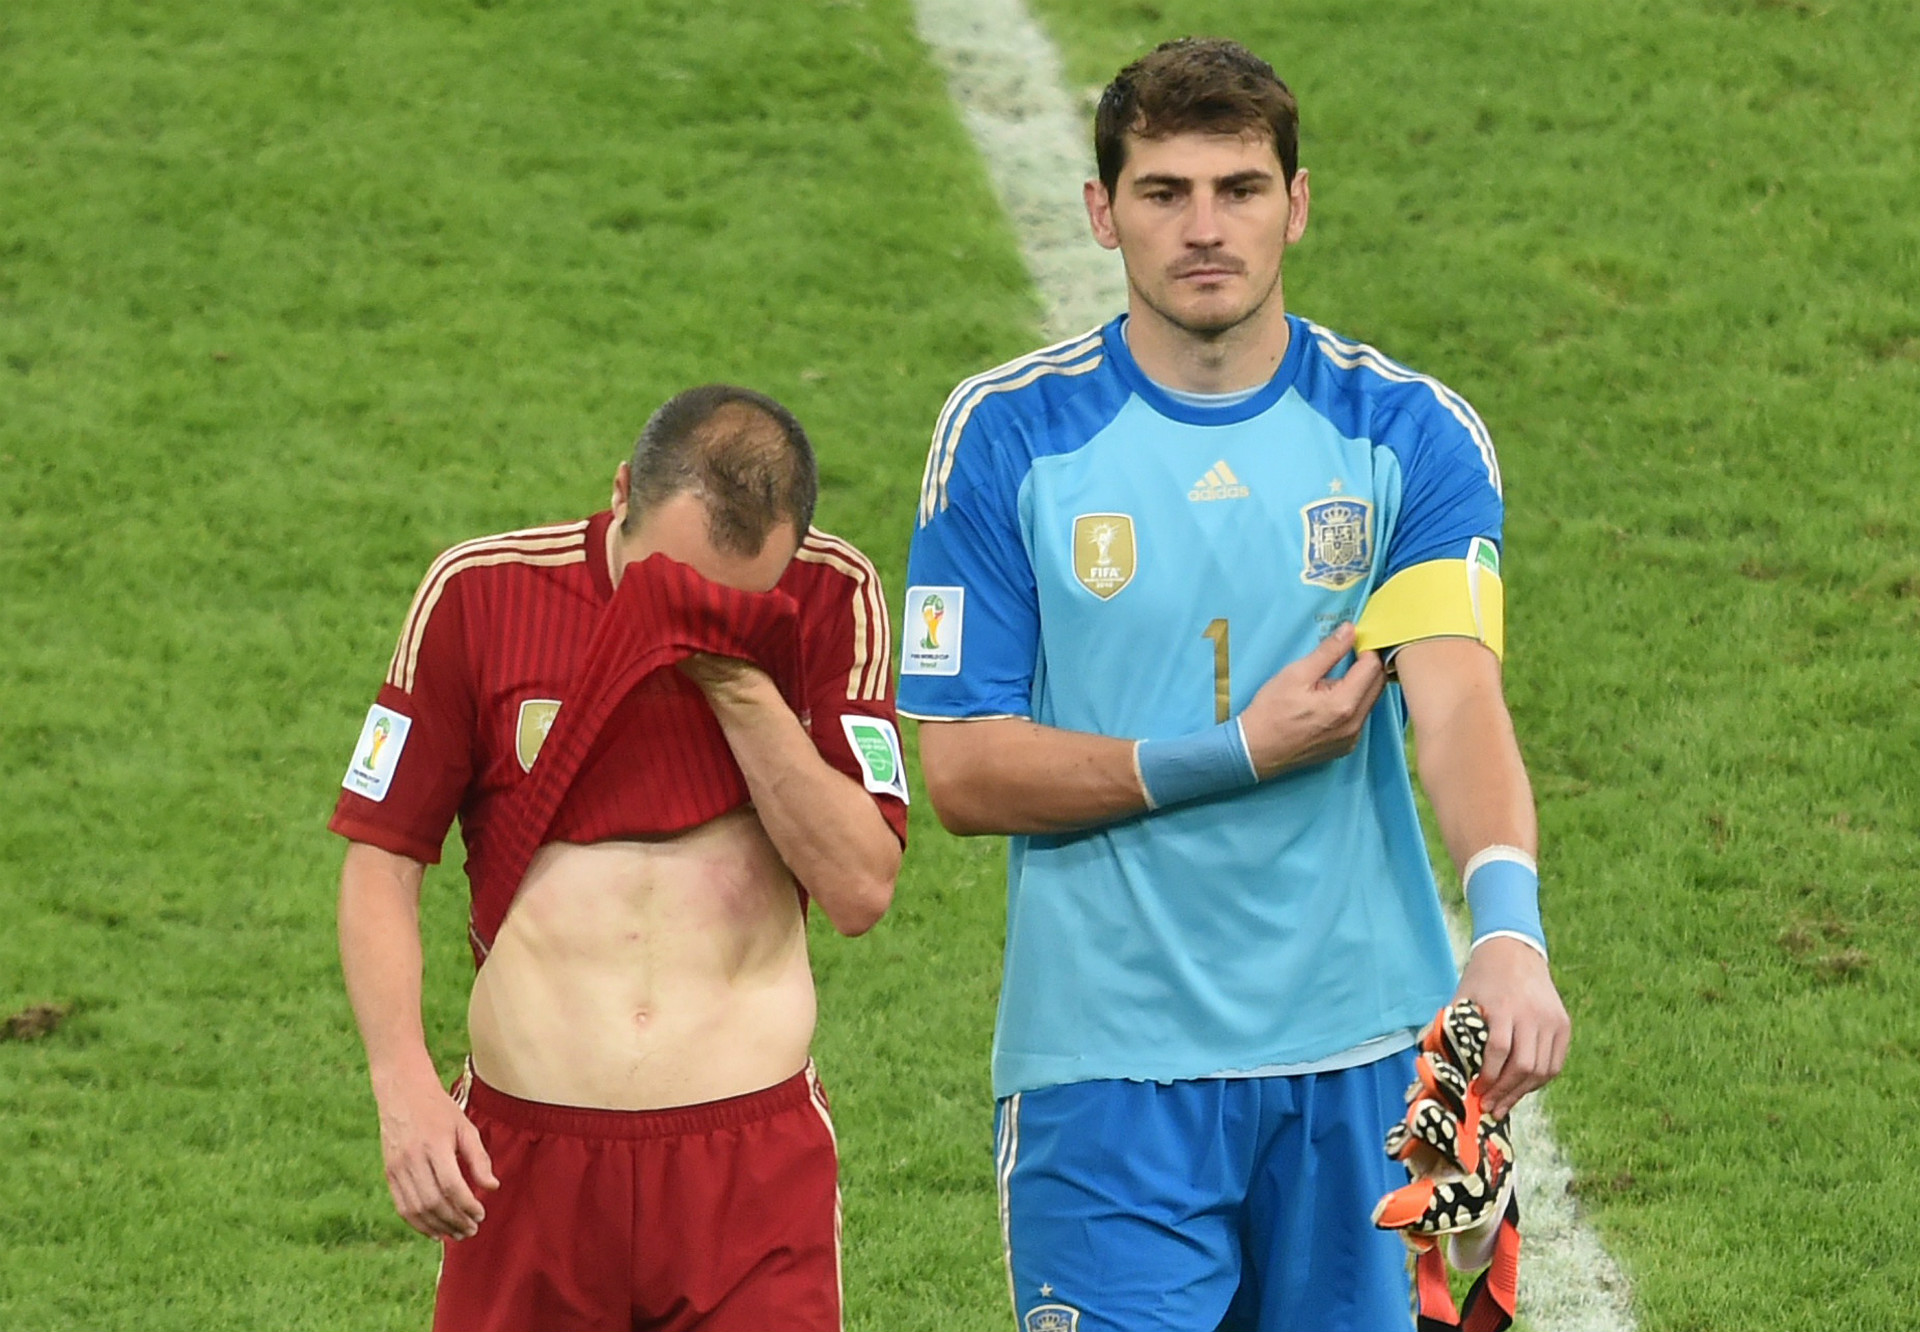 Andres Iniesta Iker Casillas Spain Chile 2014 World Cup Group B 06182014